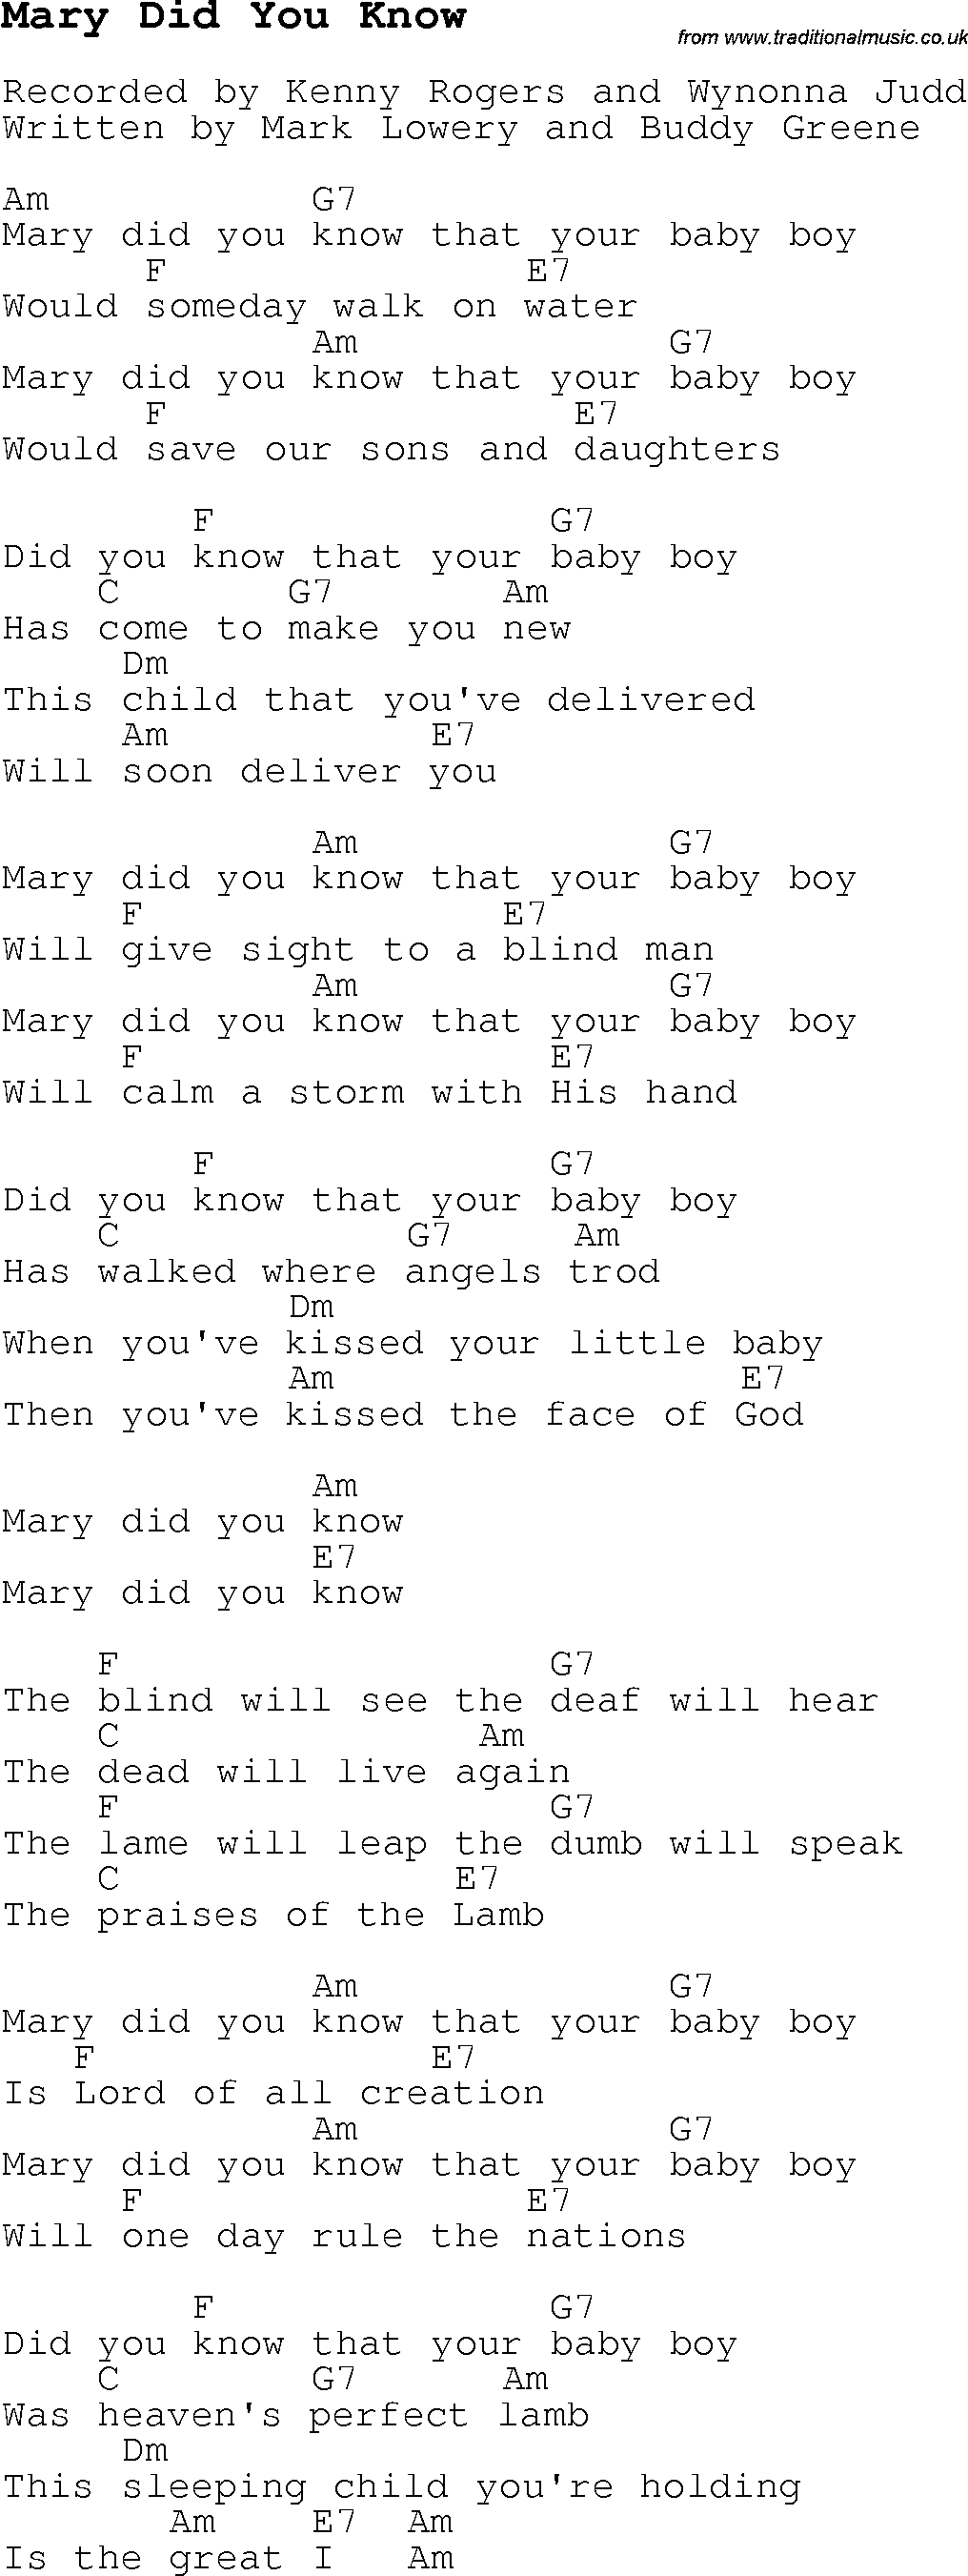 picture relating to Mary Did You Know Lyrics Printable identified as Xmas Carol/Music lyrics with chords for Mary Did Oneself Understand